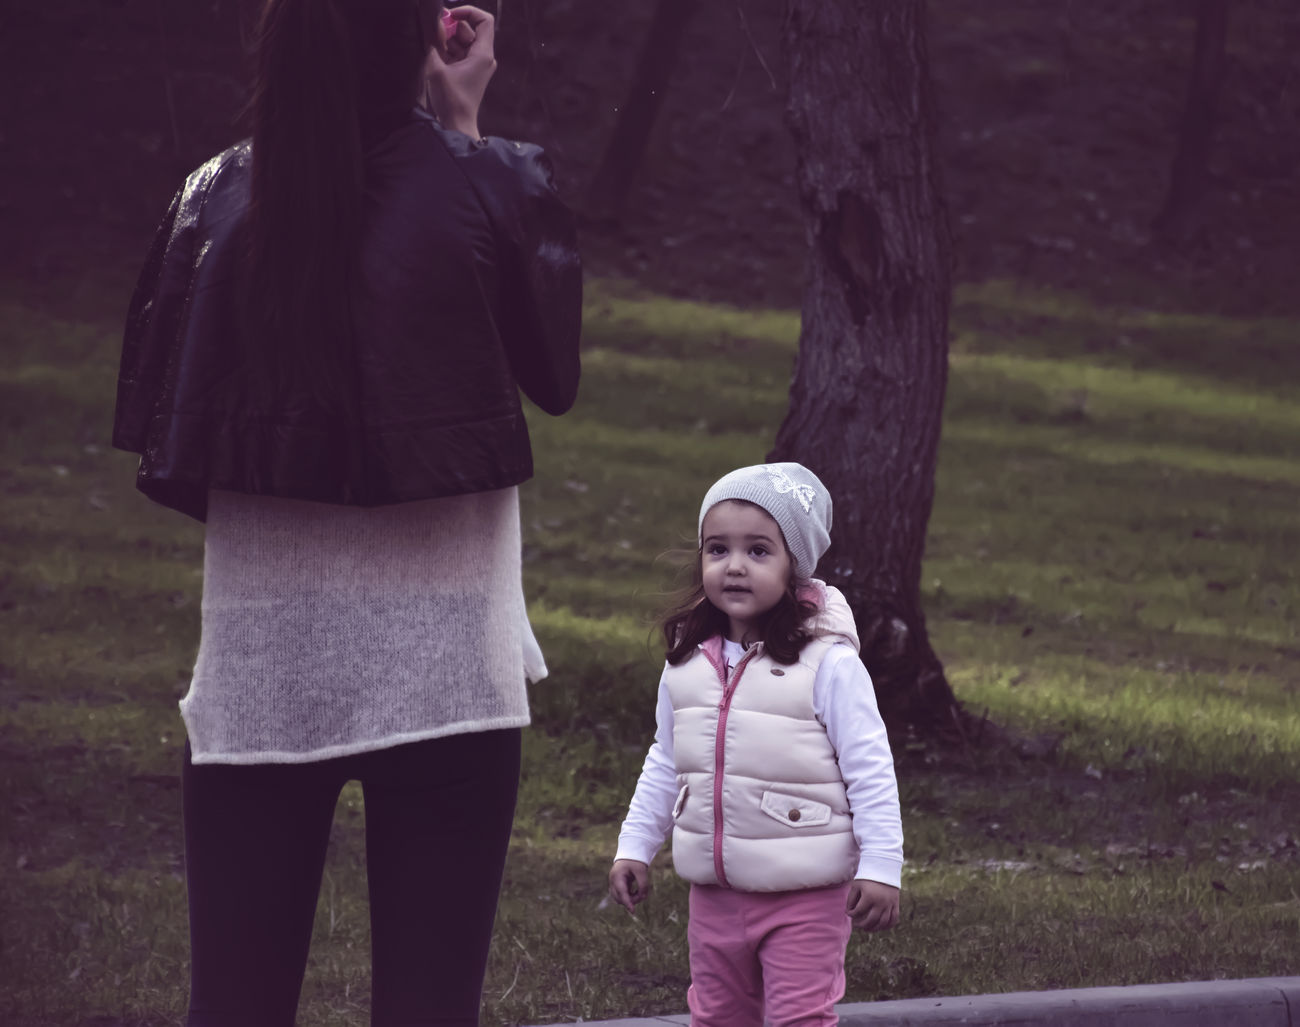 Up Close Street Photography Capture The Moment Casual Clothing Children Cute Day Focus On Foreground Front View Girl Grass Leisure Activity Lifestyles Mather And Children Outdoors Person Portrait Standing The KIOMI Collection Toothy Smile Warm Clothing Women Who Inspire You